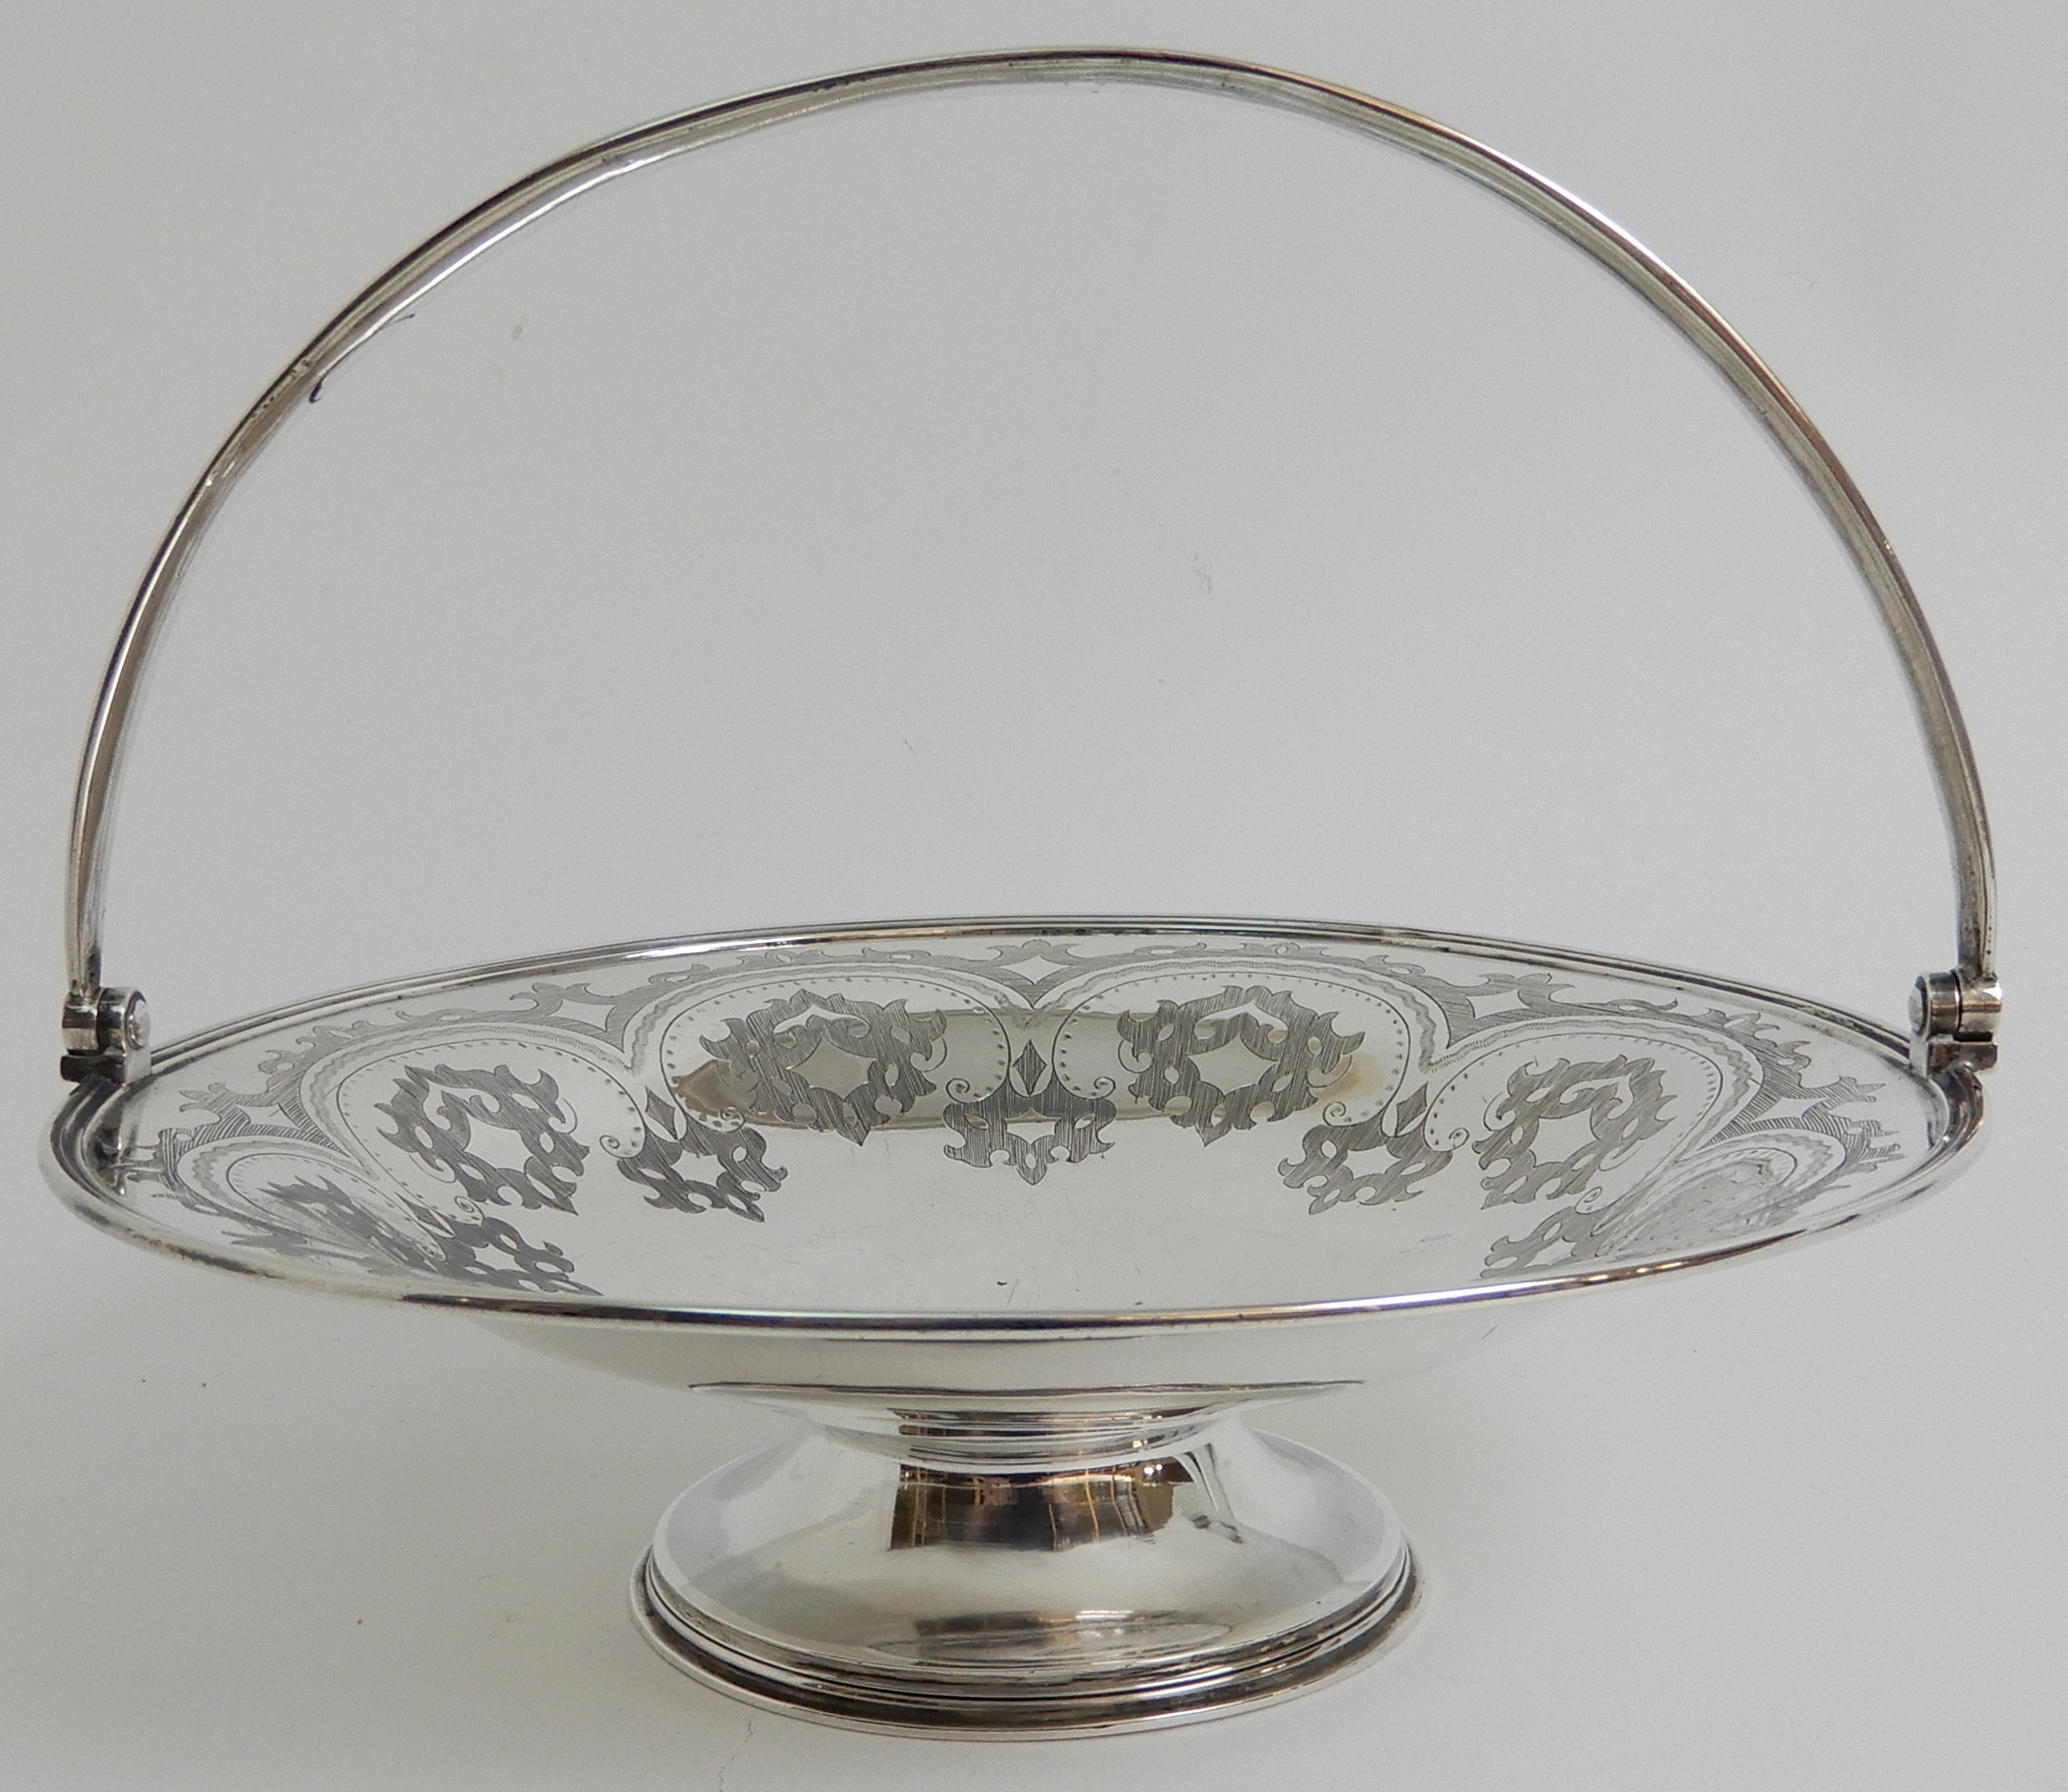 Lot 155 - A VICTORIAN SILVER SWING HANDLED BASKET by Robert Harper, London 1869, of circular form with